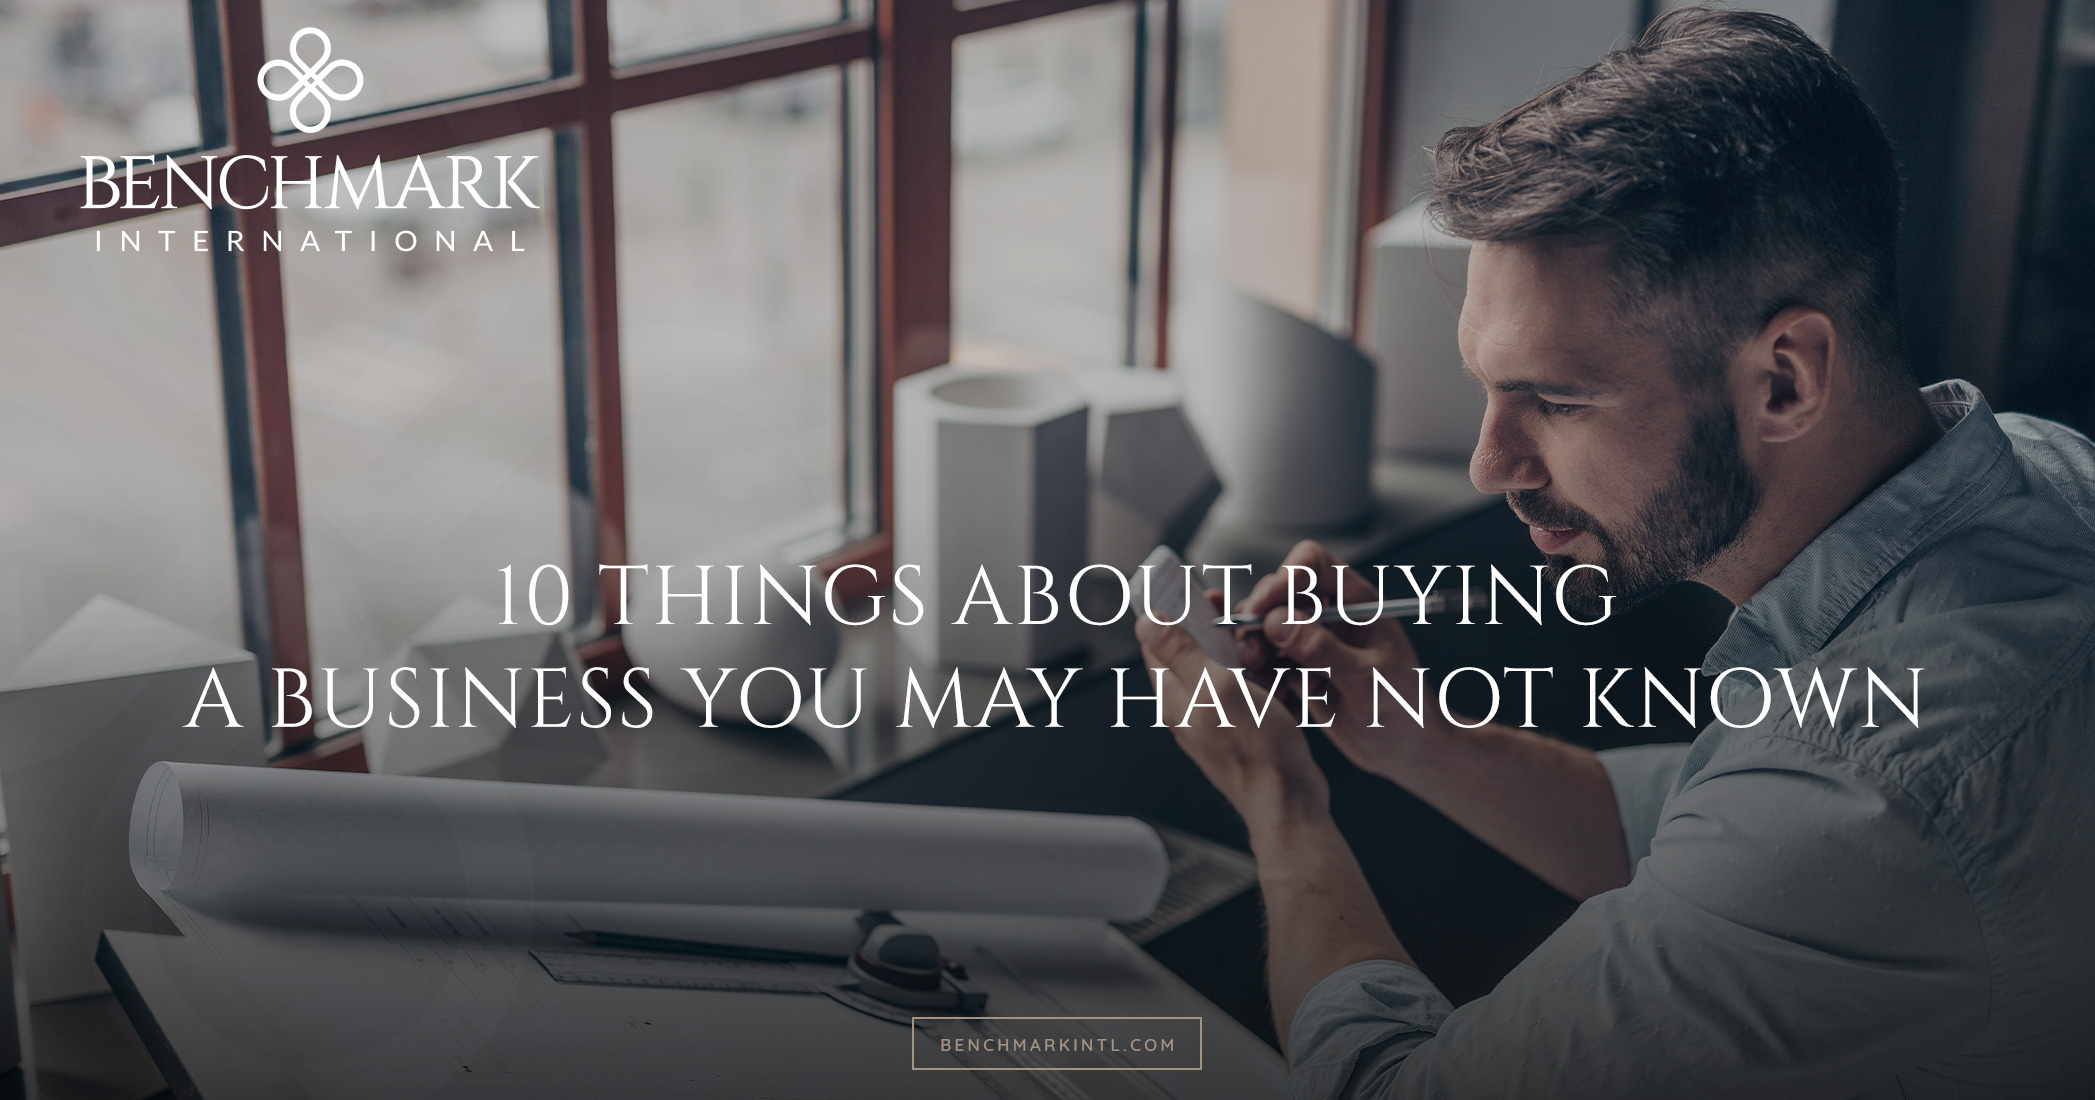 10 Things About Buying A Business You May Have Not Known